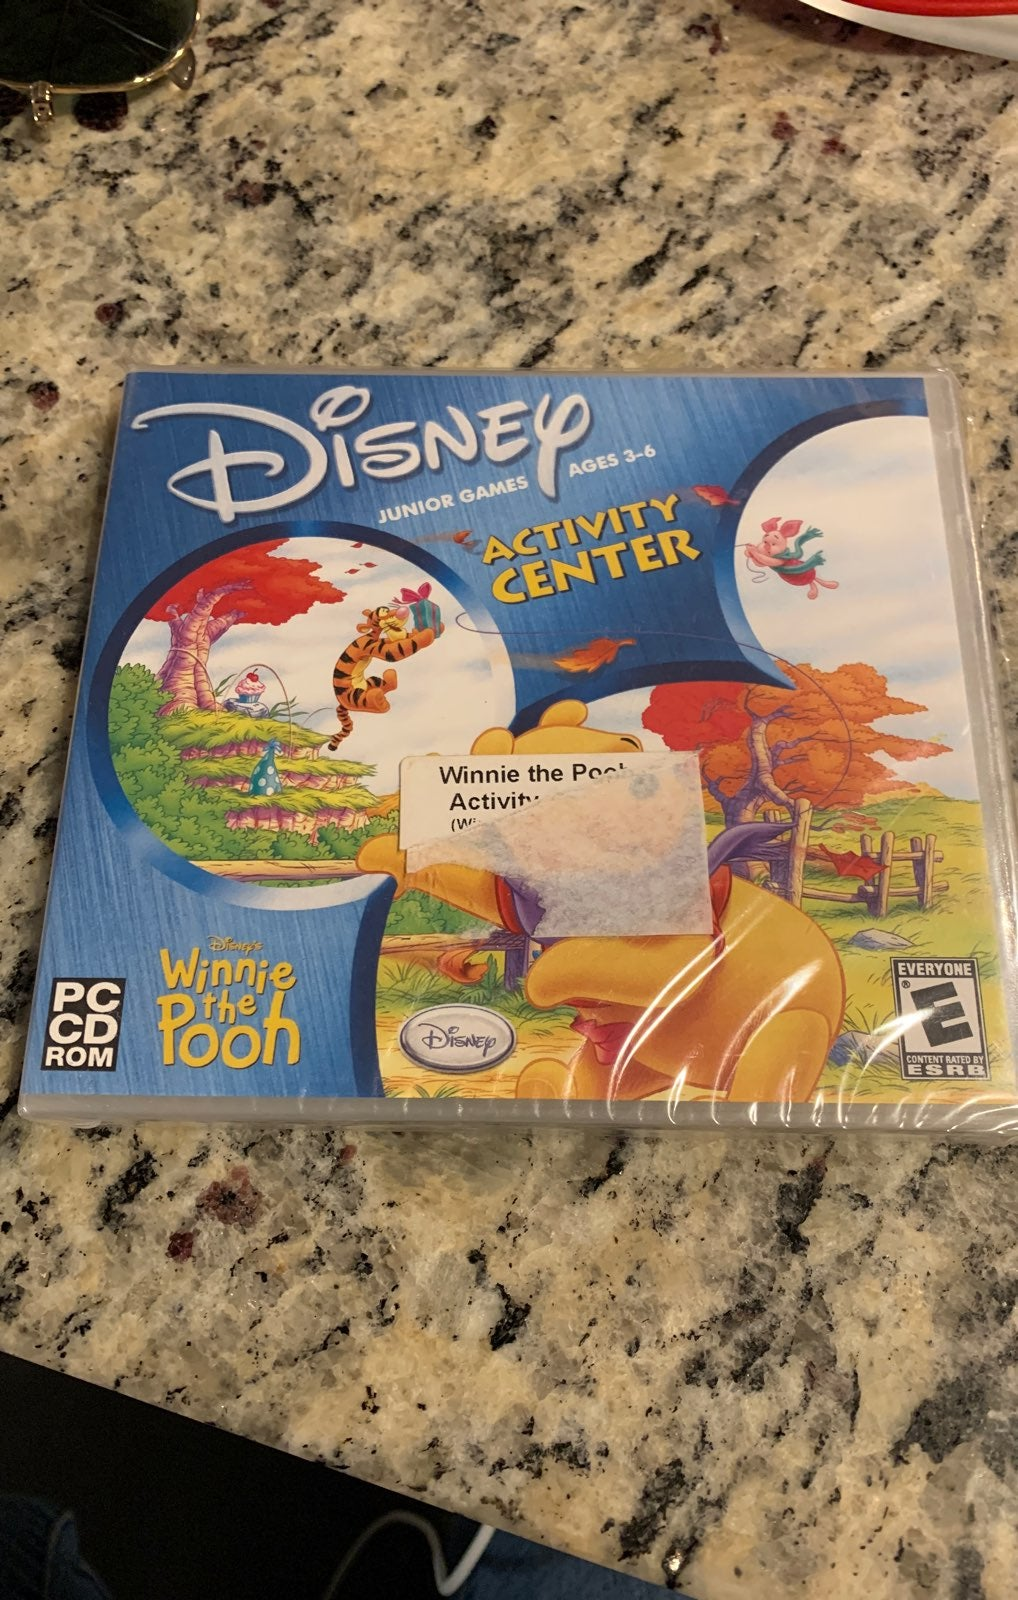 Disney Junior Games ages 3-6 New